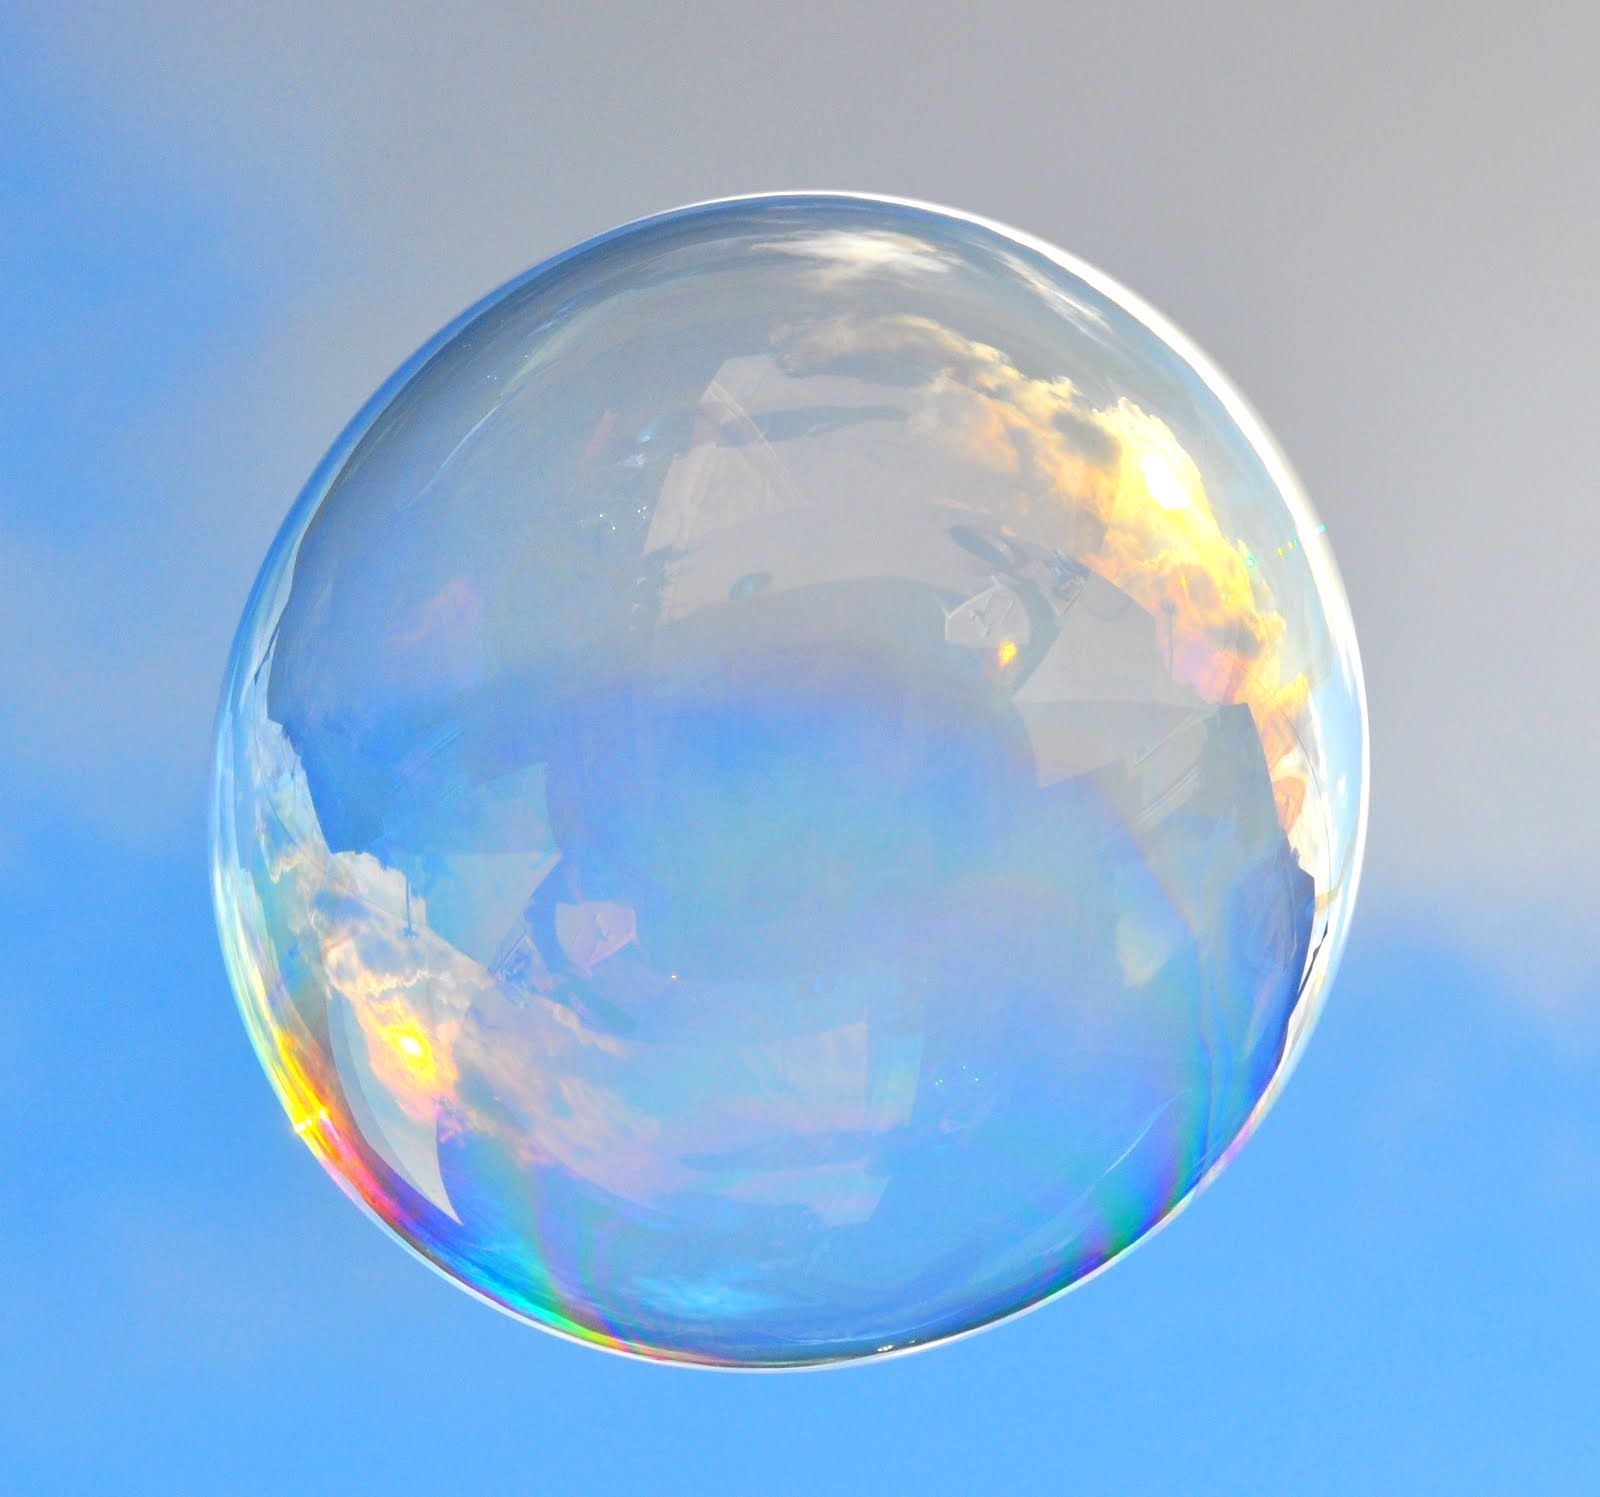 bubble balloon wallpaper android 1675 wallpaper high resolution